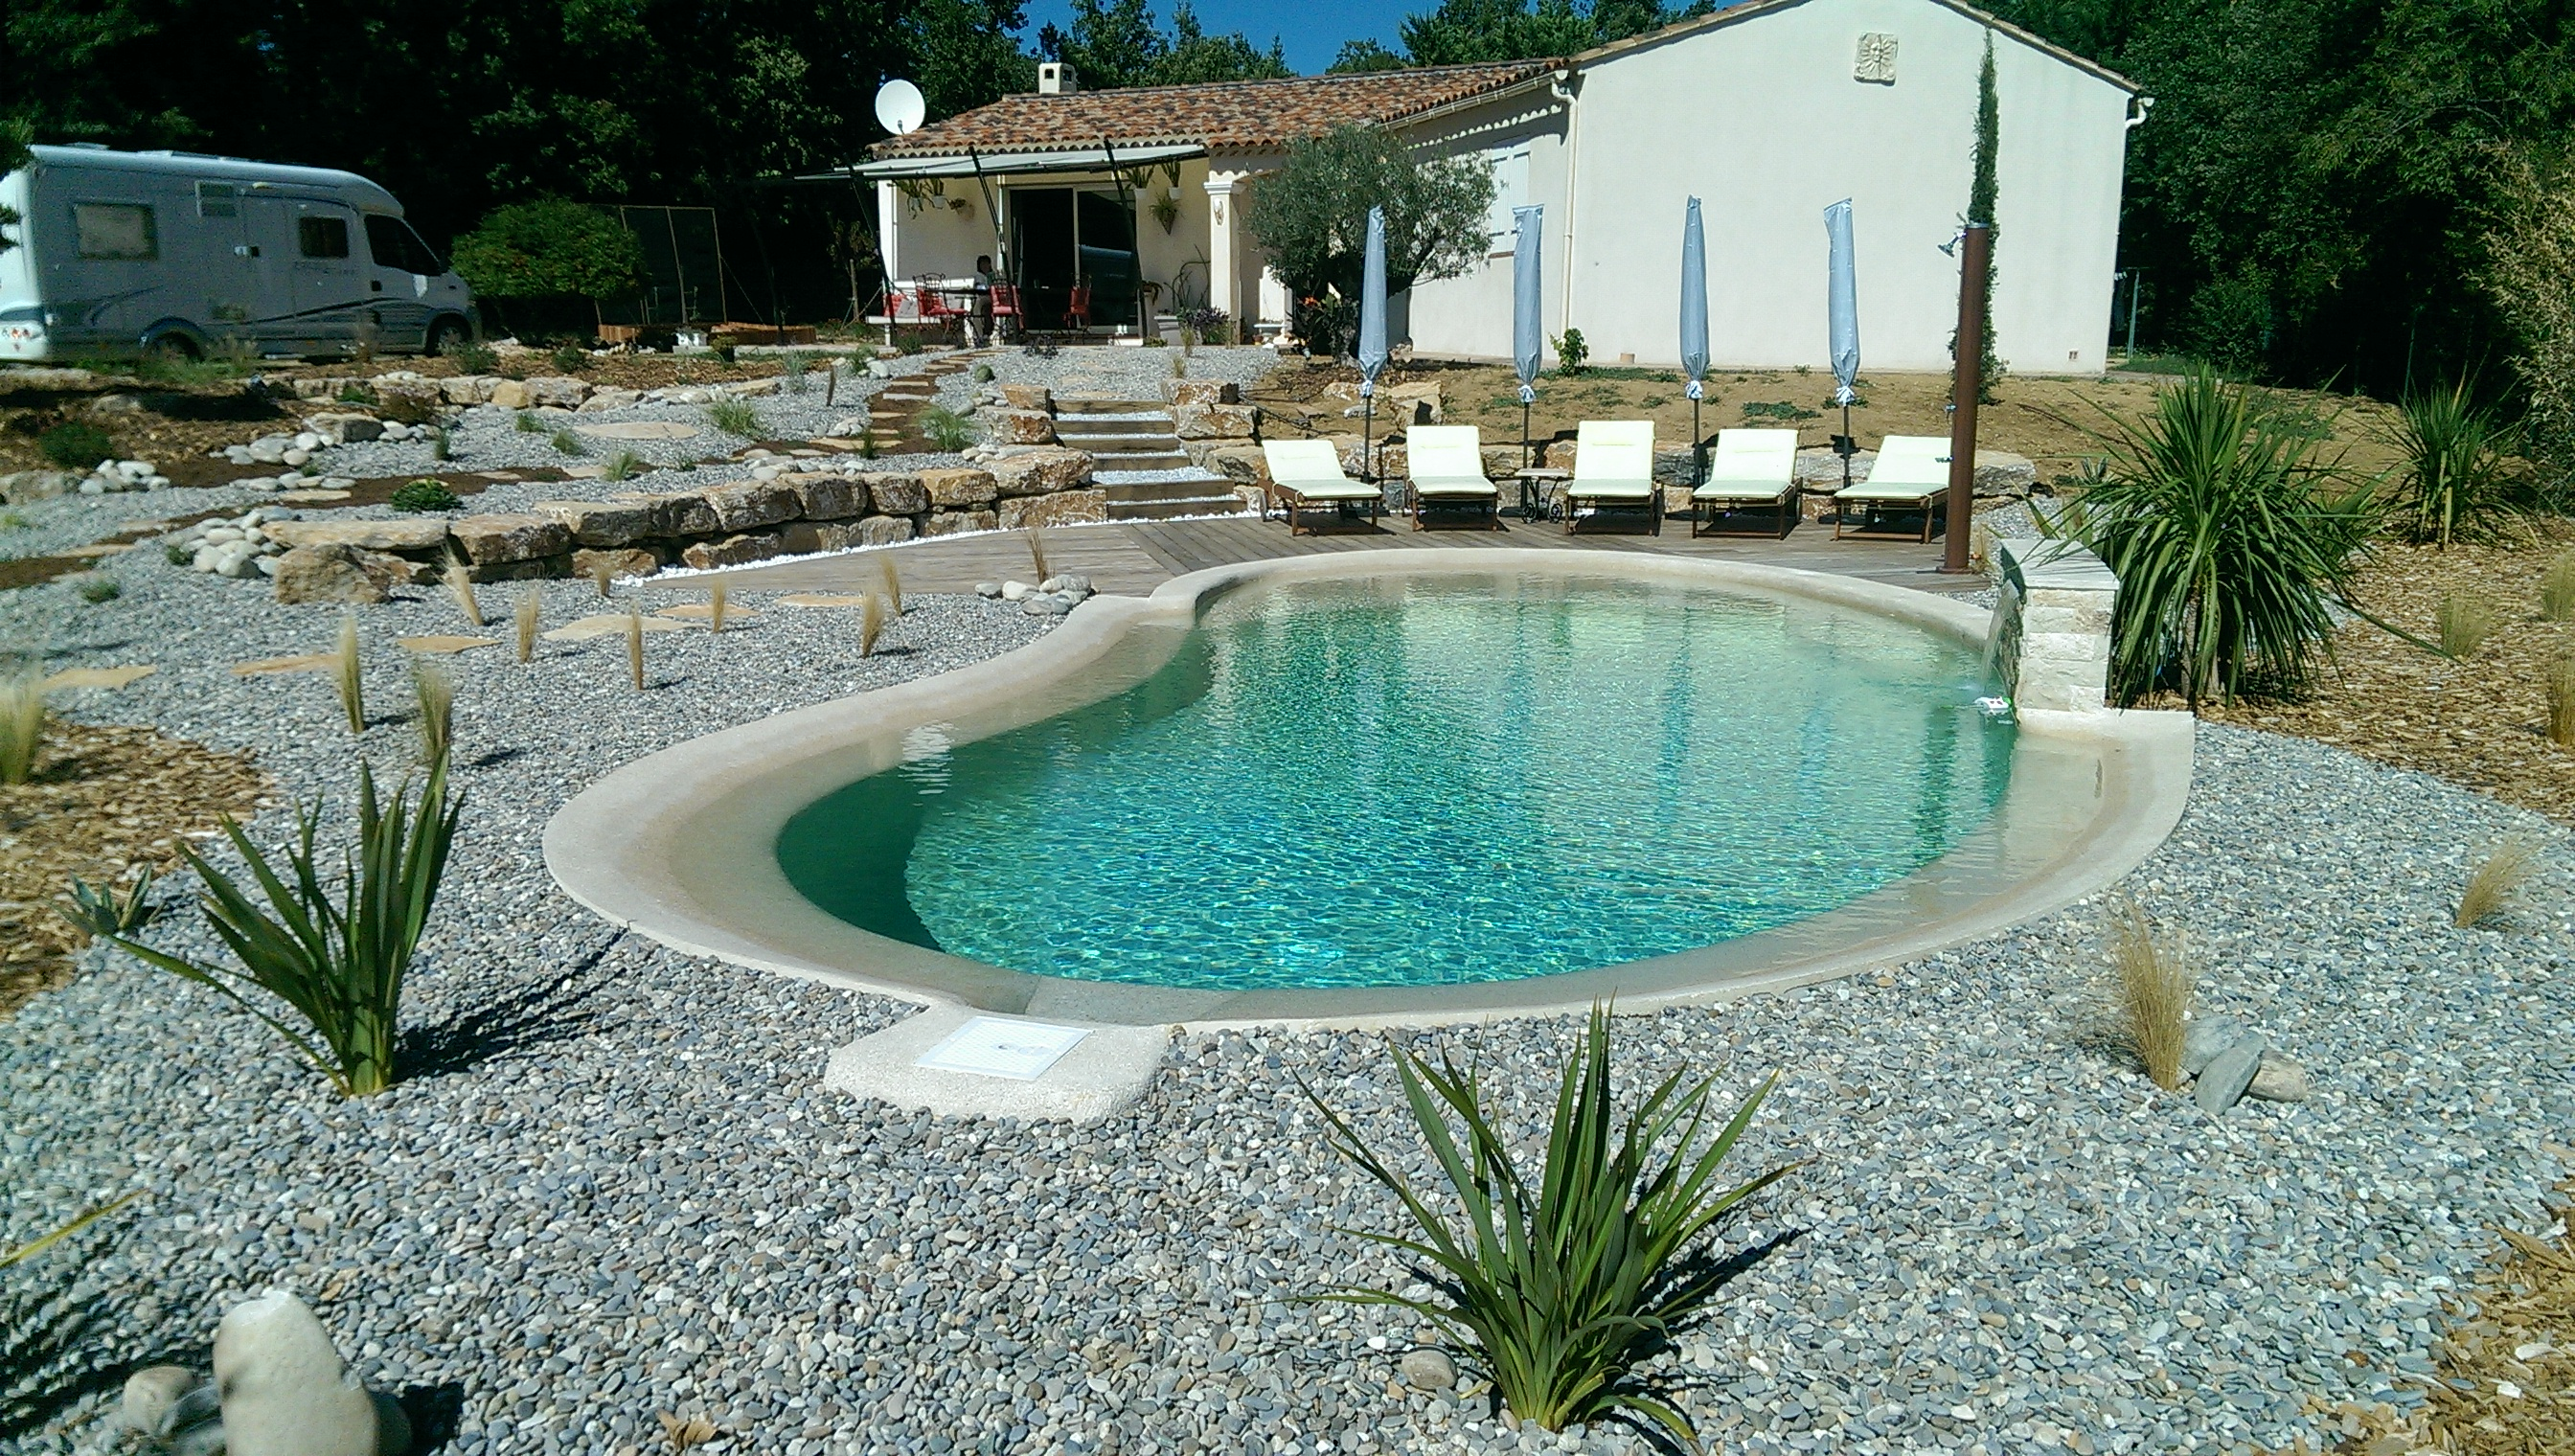 Am nagement autour d 39 une piscine brignoles var fr jus for Amenagement de piscine